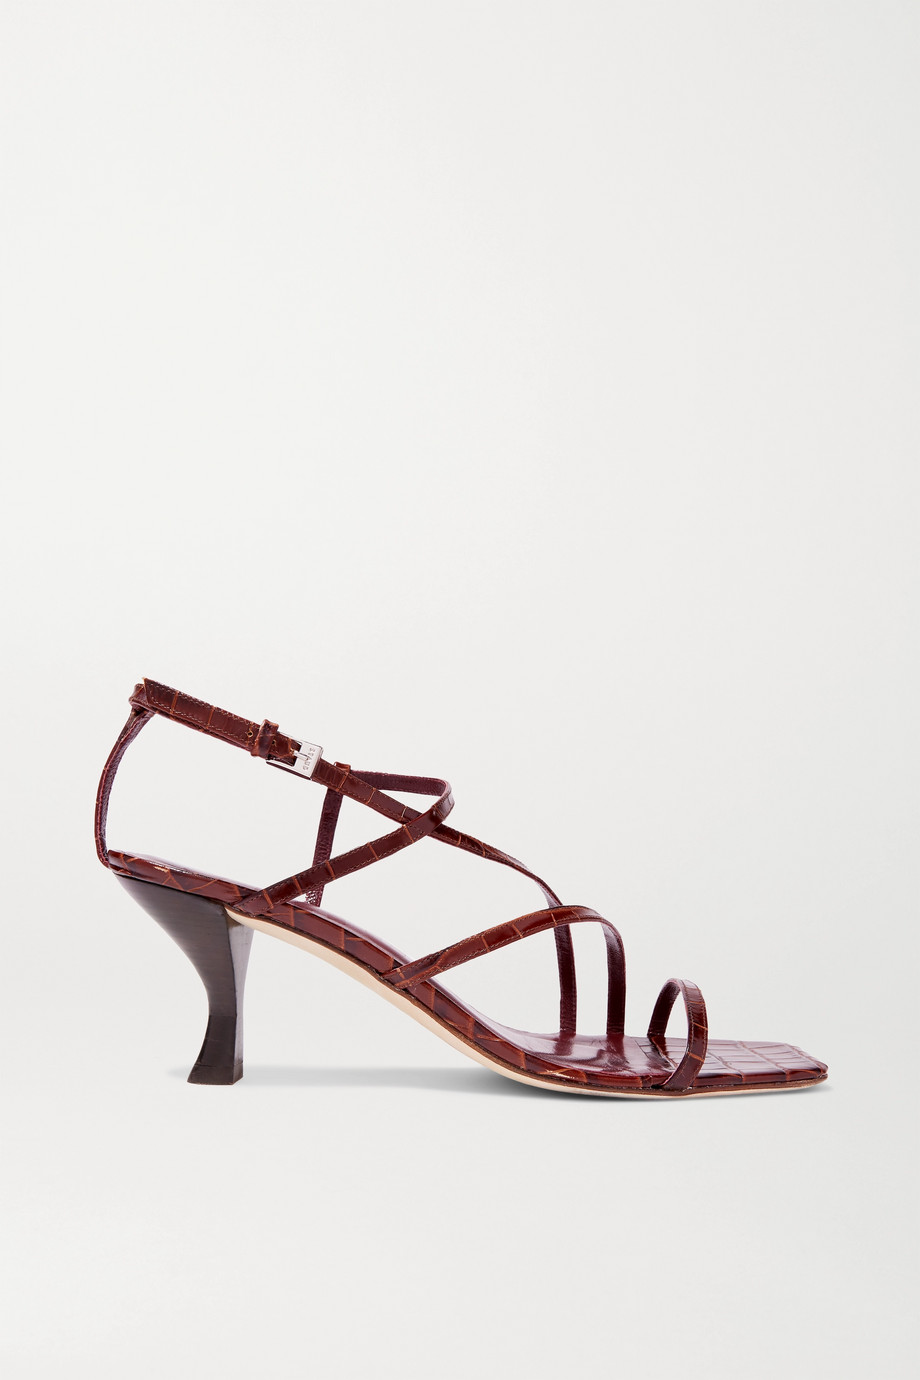 STAUD Gita croc-effect leather sandals